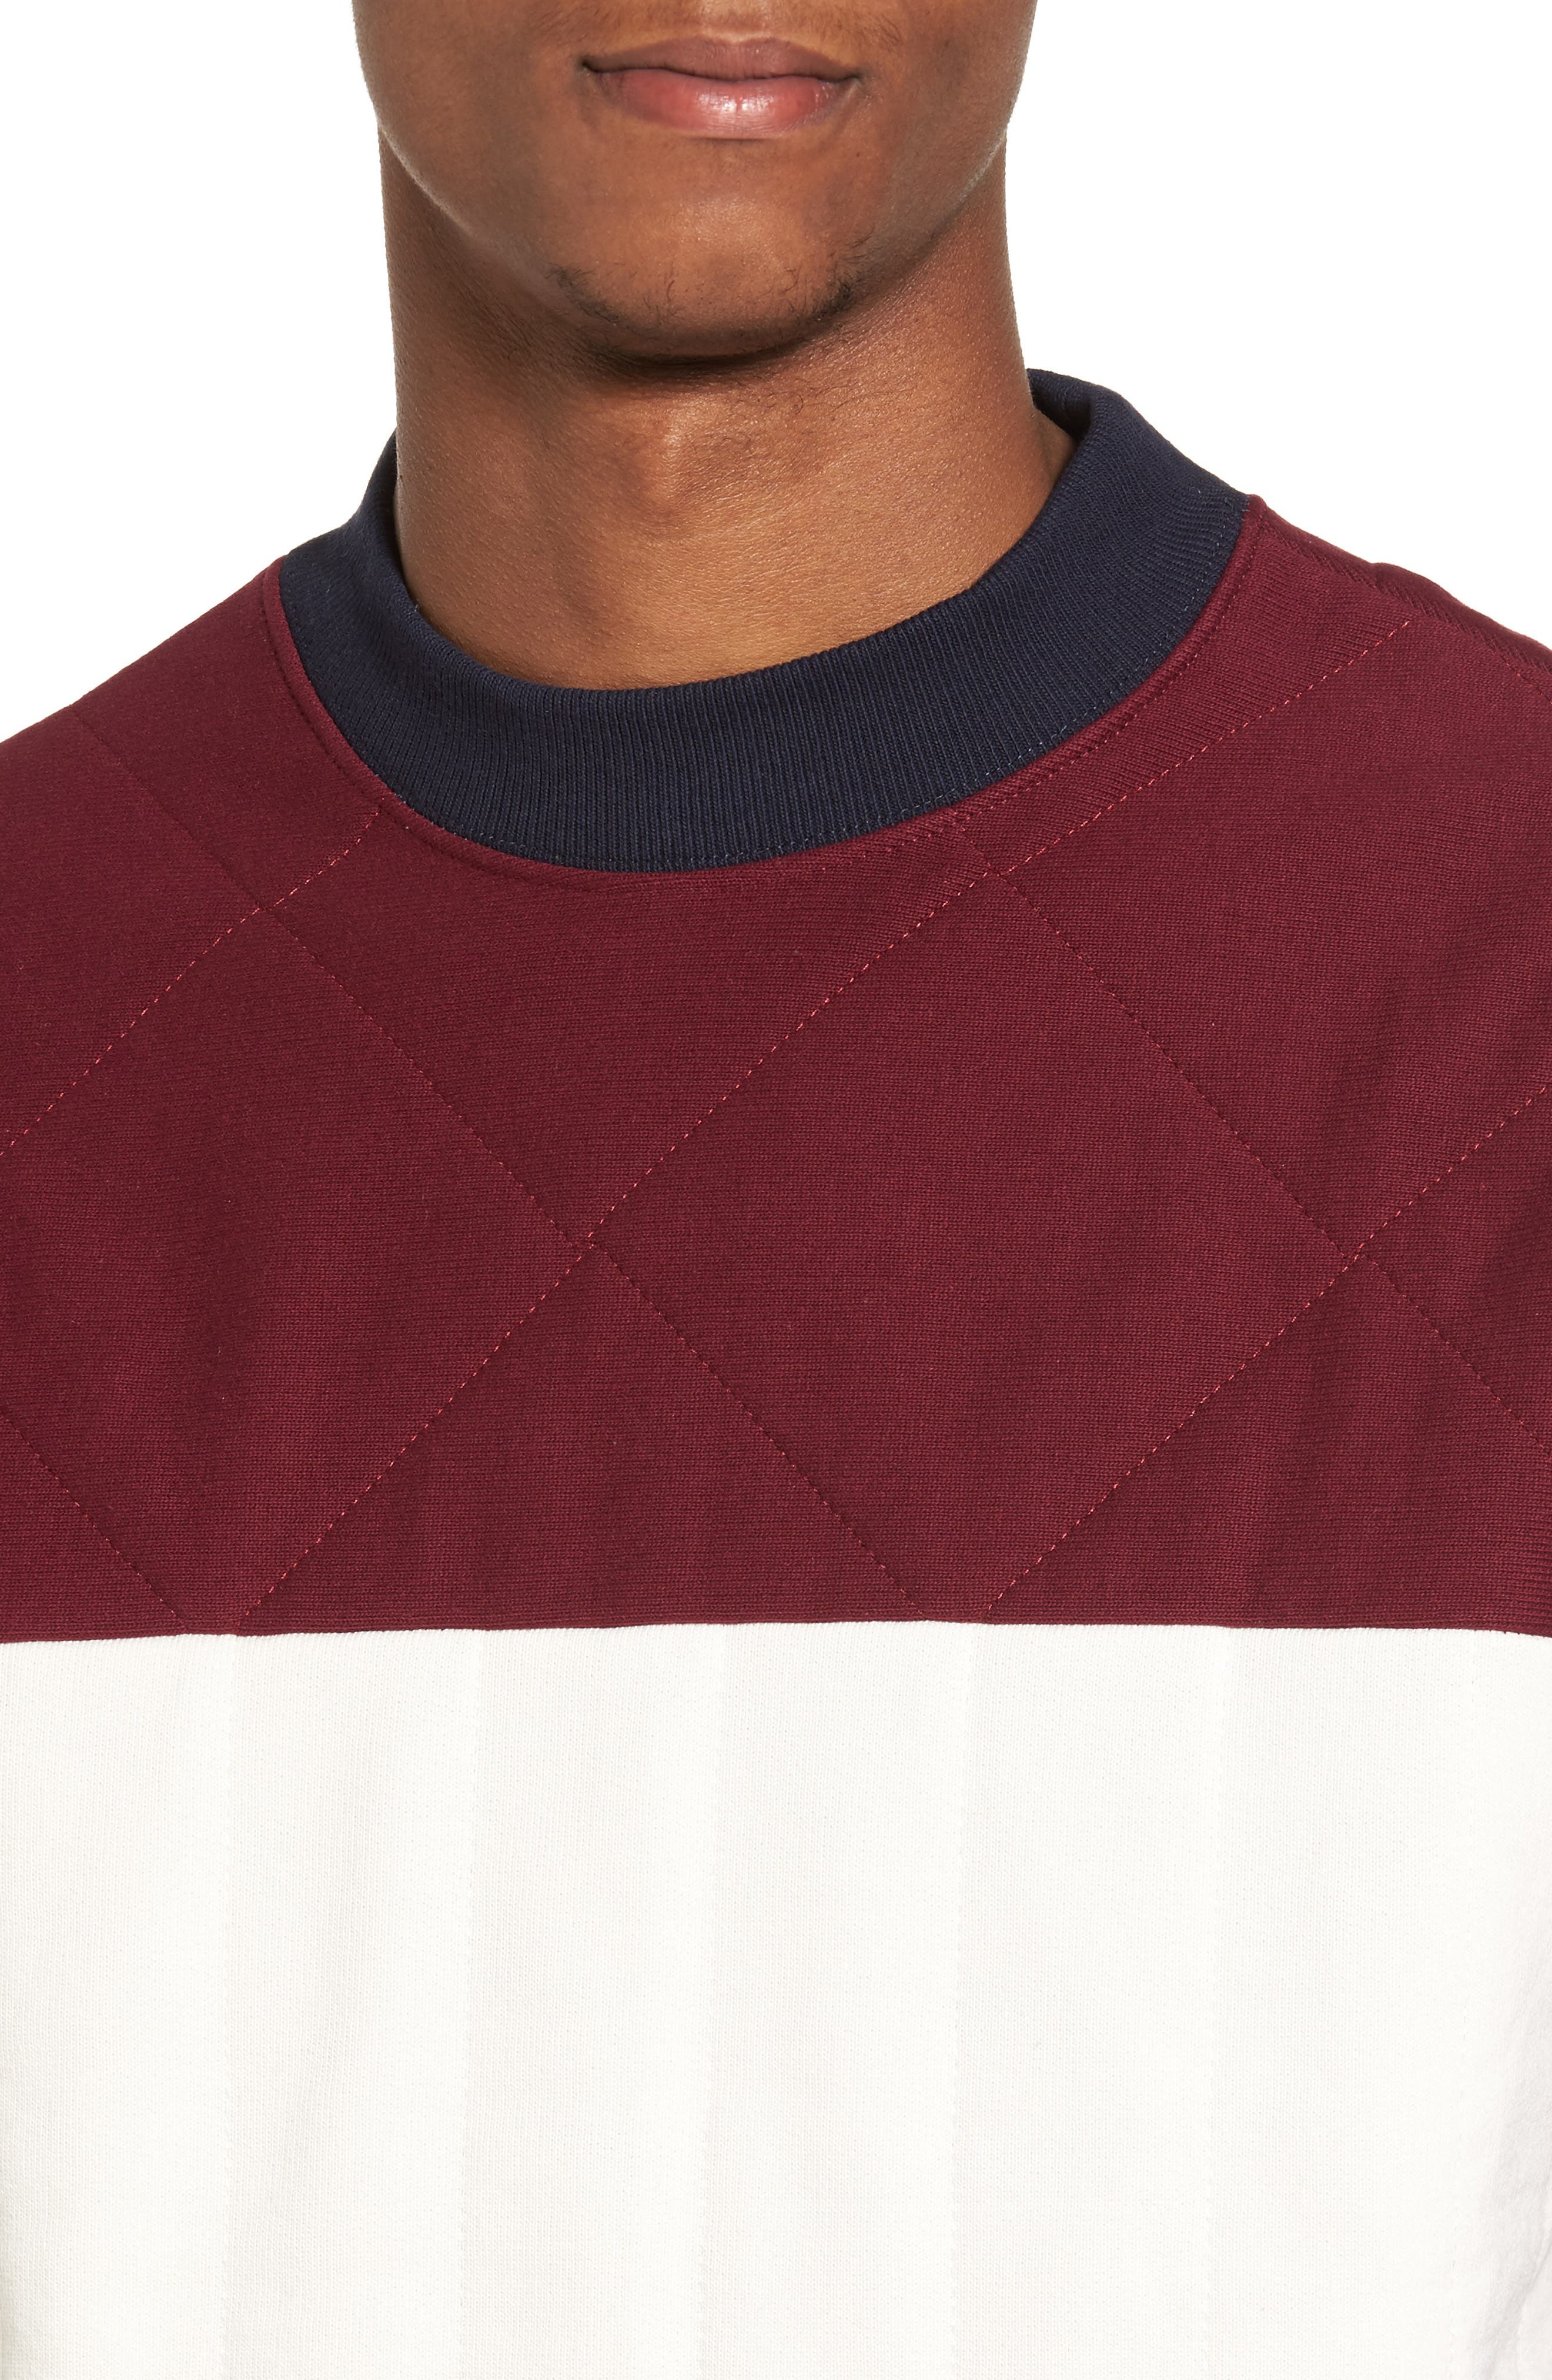 Quilted Colorblock Sweatshirt,                             Alternate thumbnail 4, color,                             930